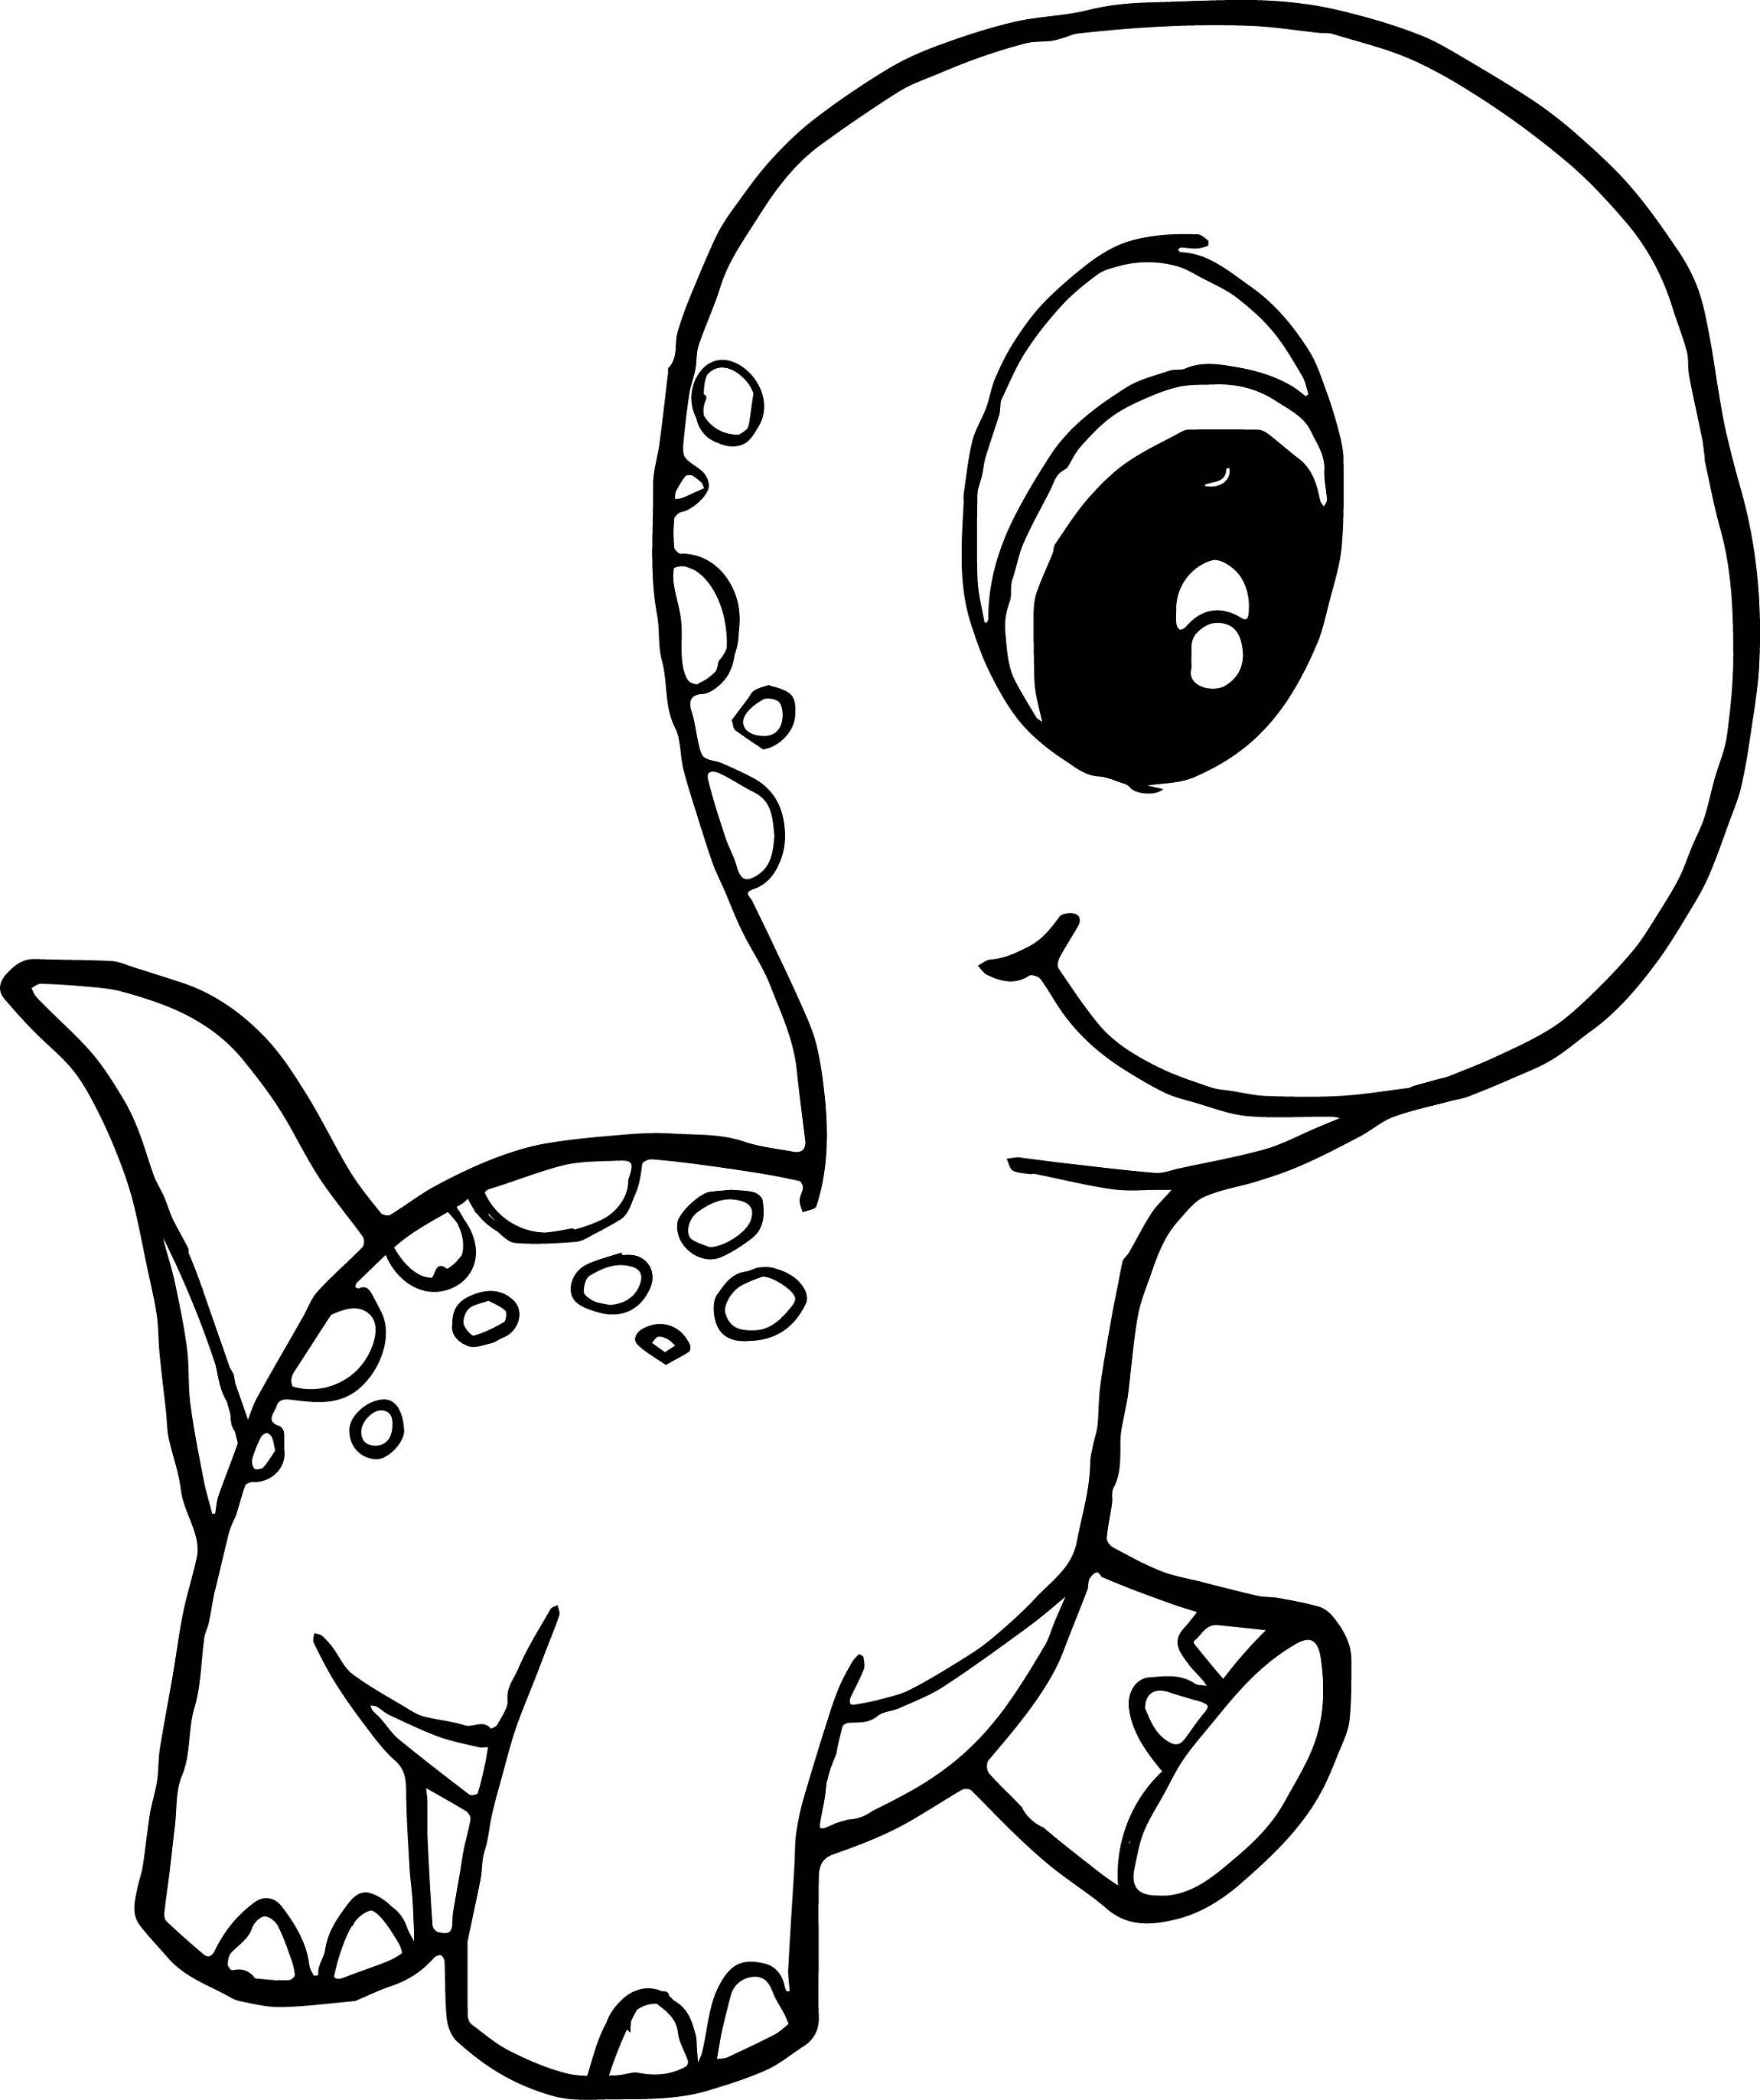 baby animals pictures to color baby dinosaur coloring pages for preschoolers with images baby animals to color pictures